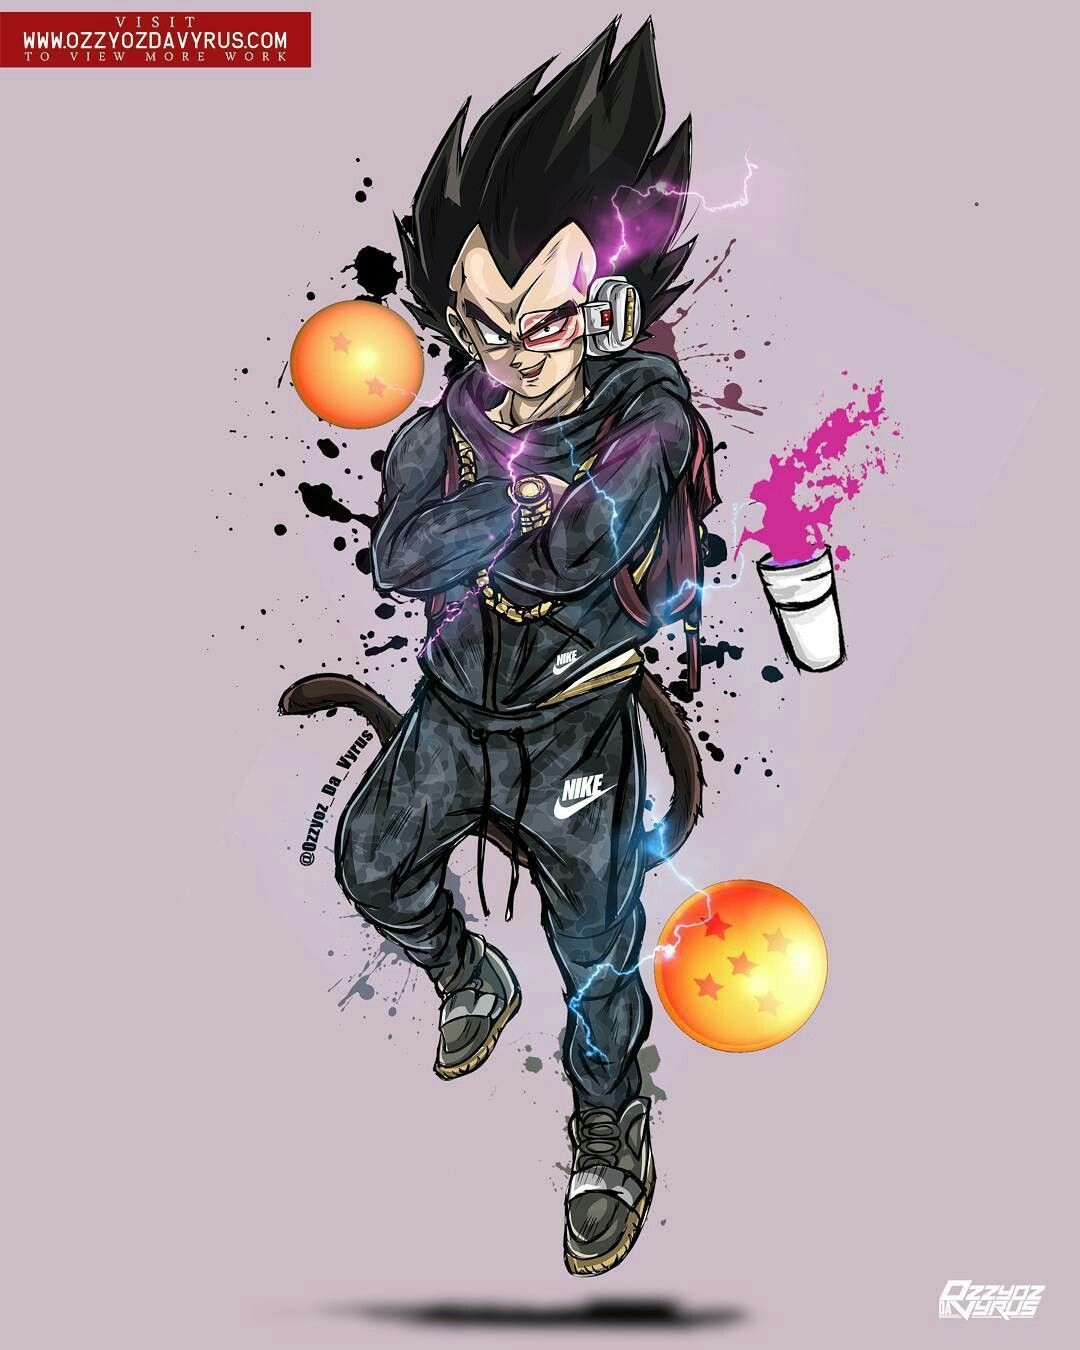 "1920x1080 67+ Ssj2 Gohan Wallpapers on WallpaperPlay"">. Download · 1024x768 Supreme Goku Wallpapers"